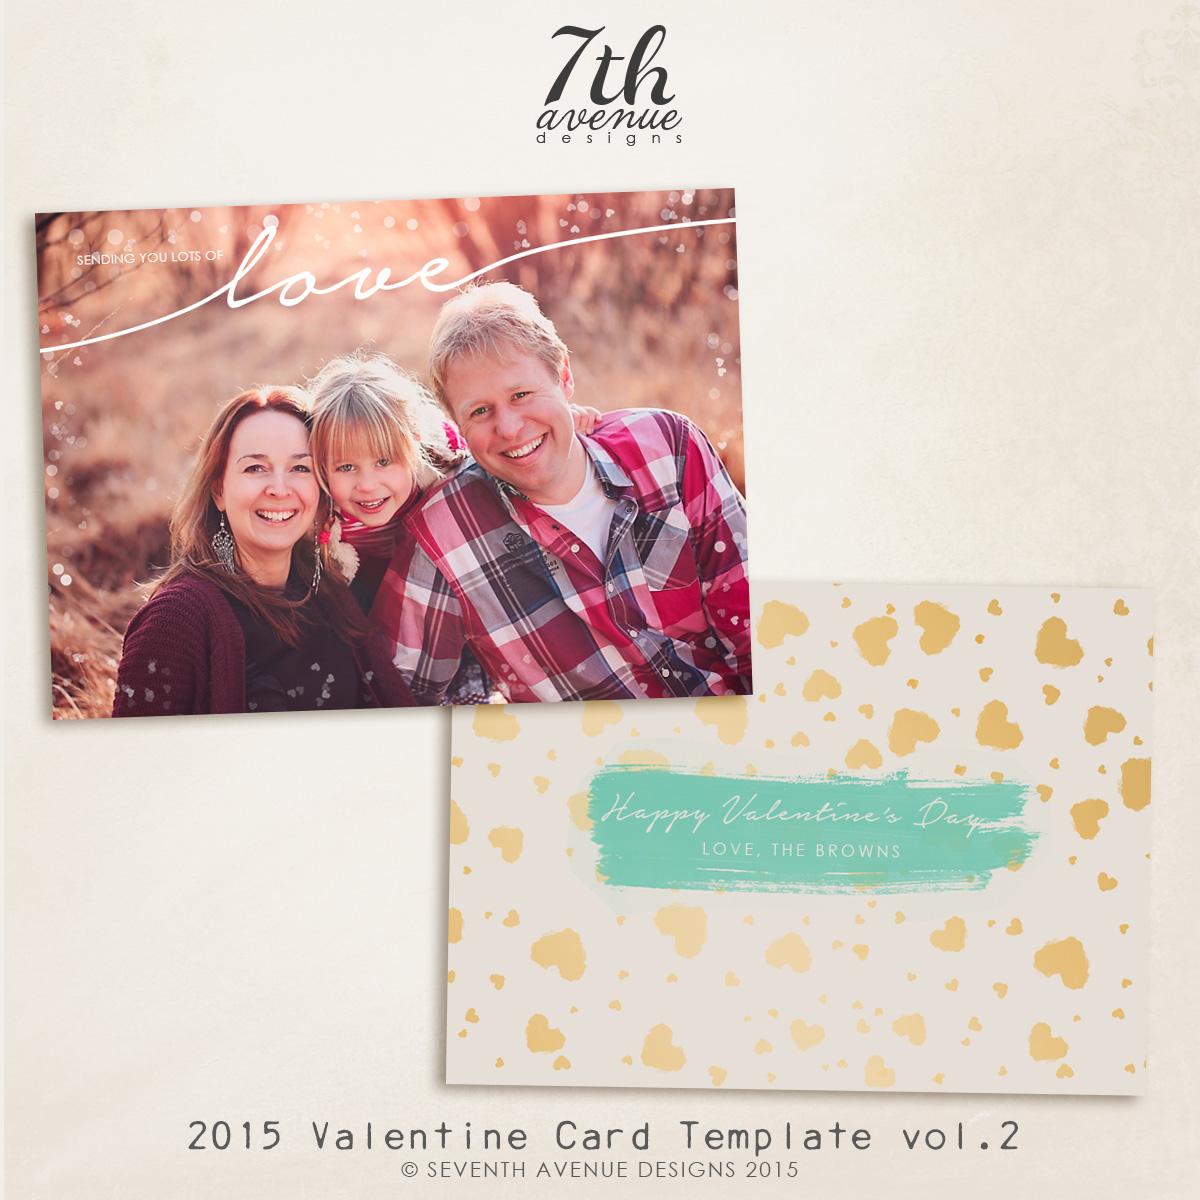 2015 Valentines Card vol.2